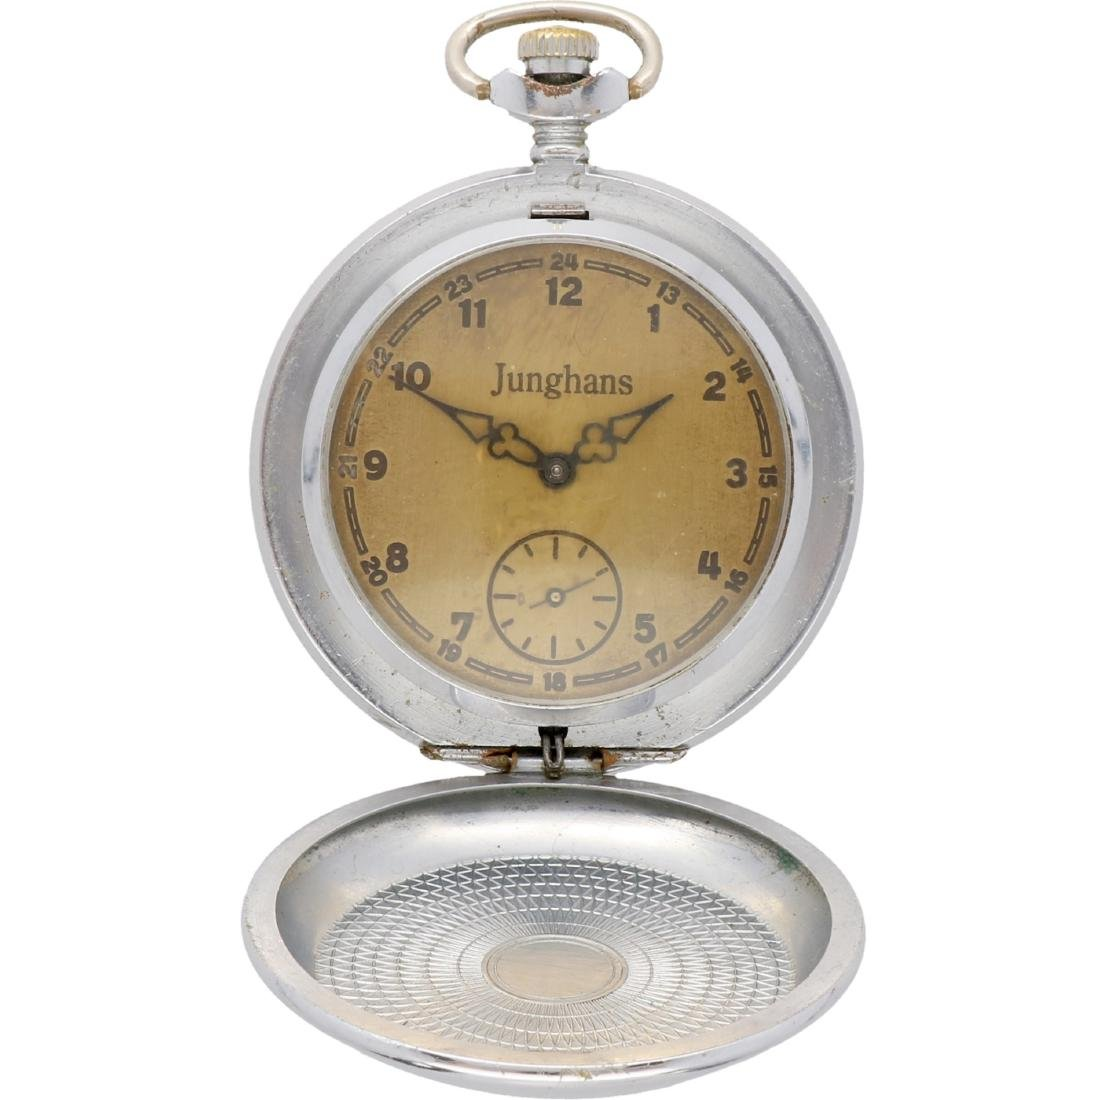 Junghans - Men's pocket watch - Manual winding.